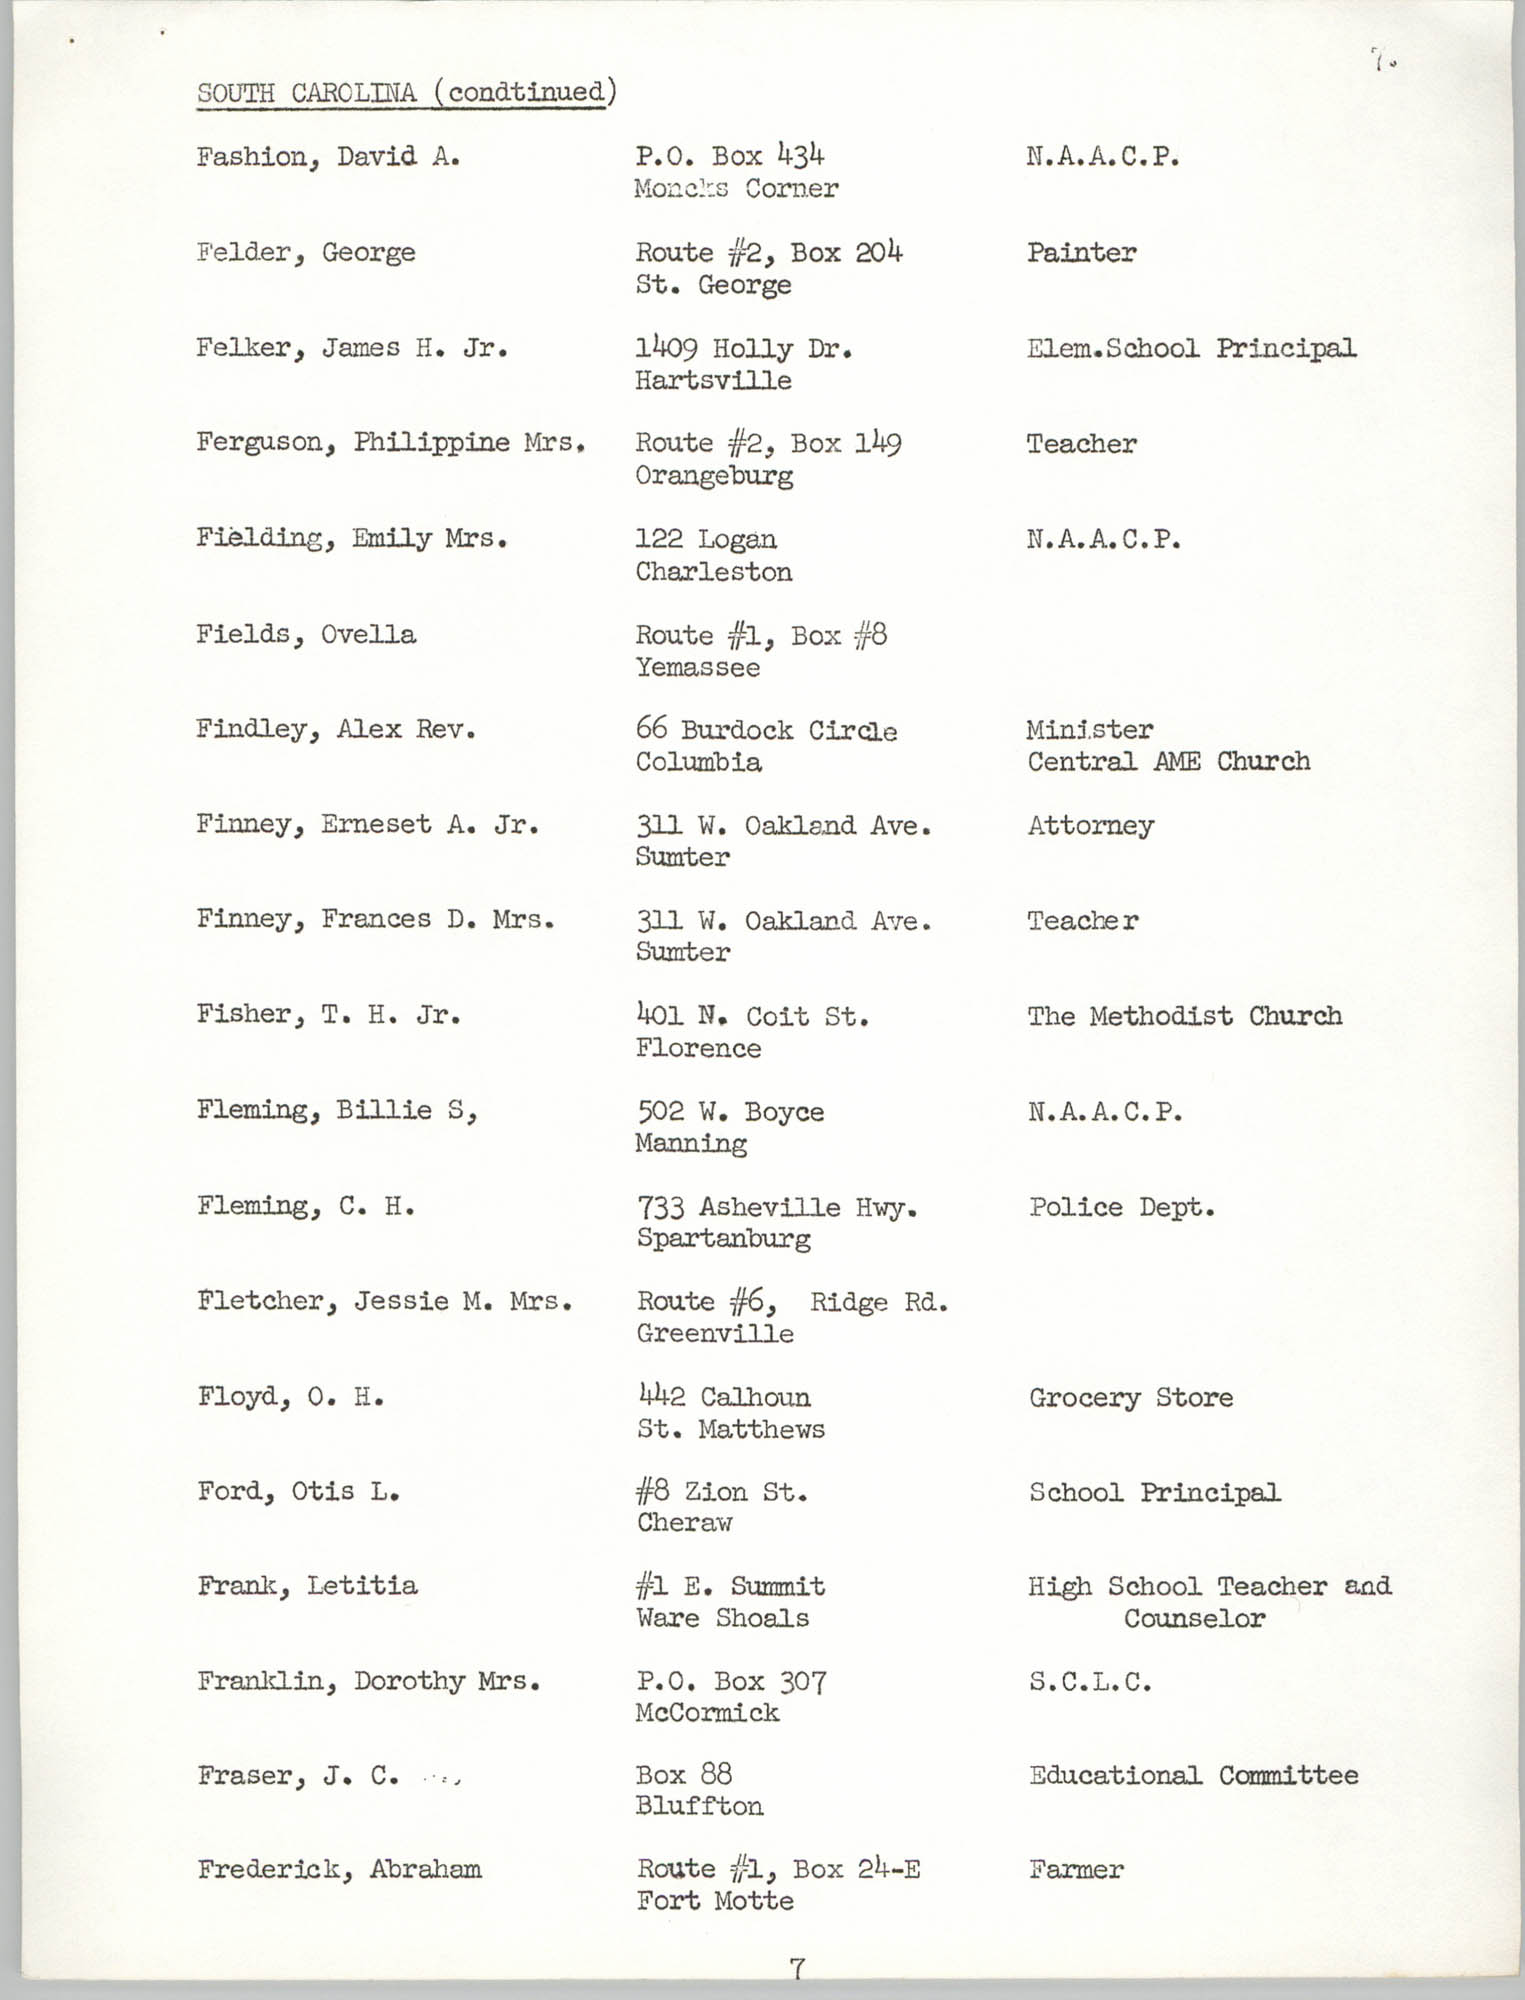 Registration, U.S. Commission on Civil Rights, Statewide Education Desegregation Conference, Page 7